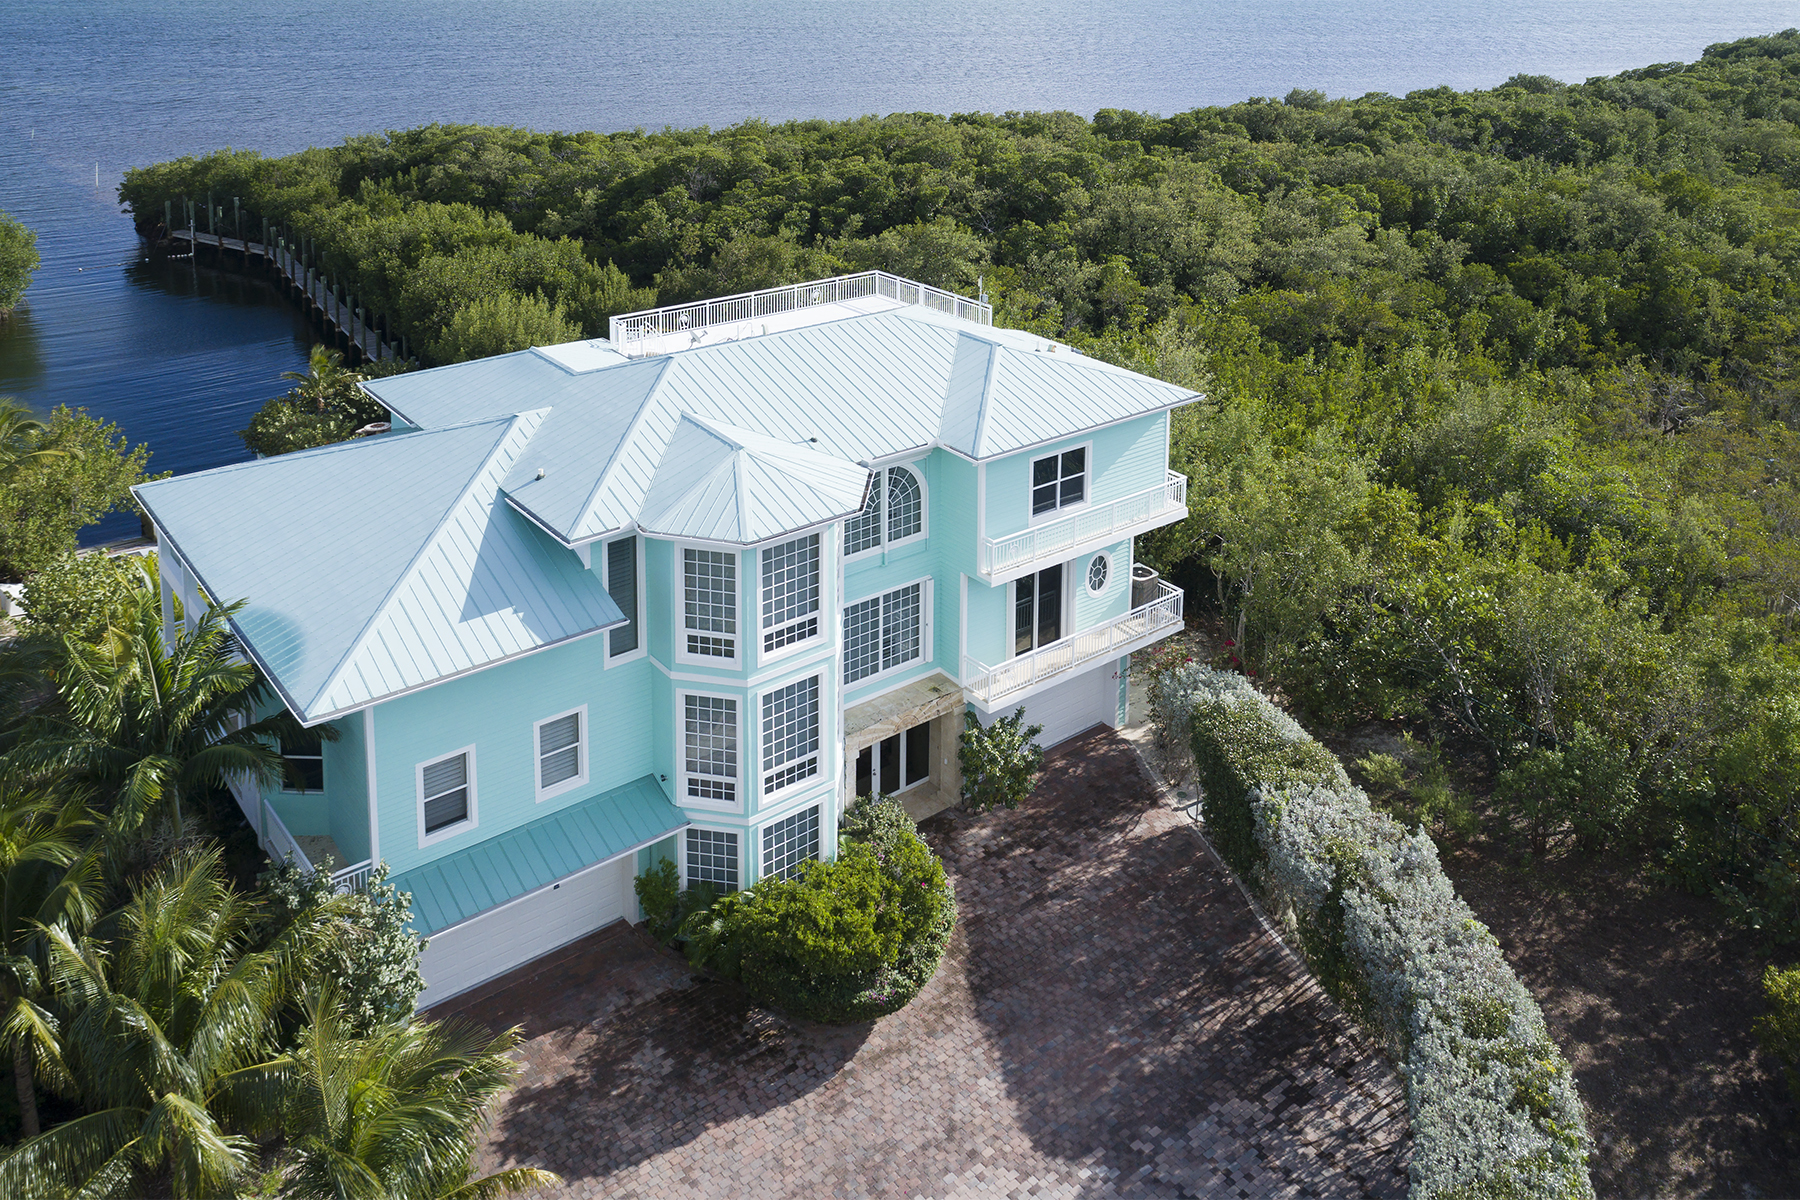 Casa Unifamiliar por un Venta en Grand Waterfront Home with Guest House 97251 Overseas Highway South Side Key Largo, Florida, 33037 Estados Unidos